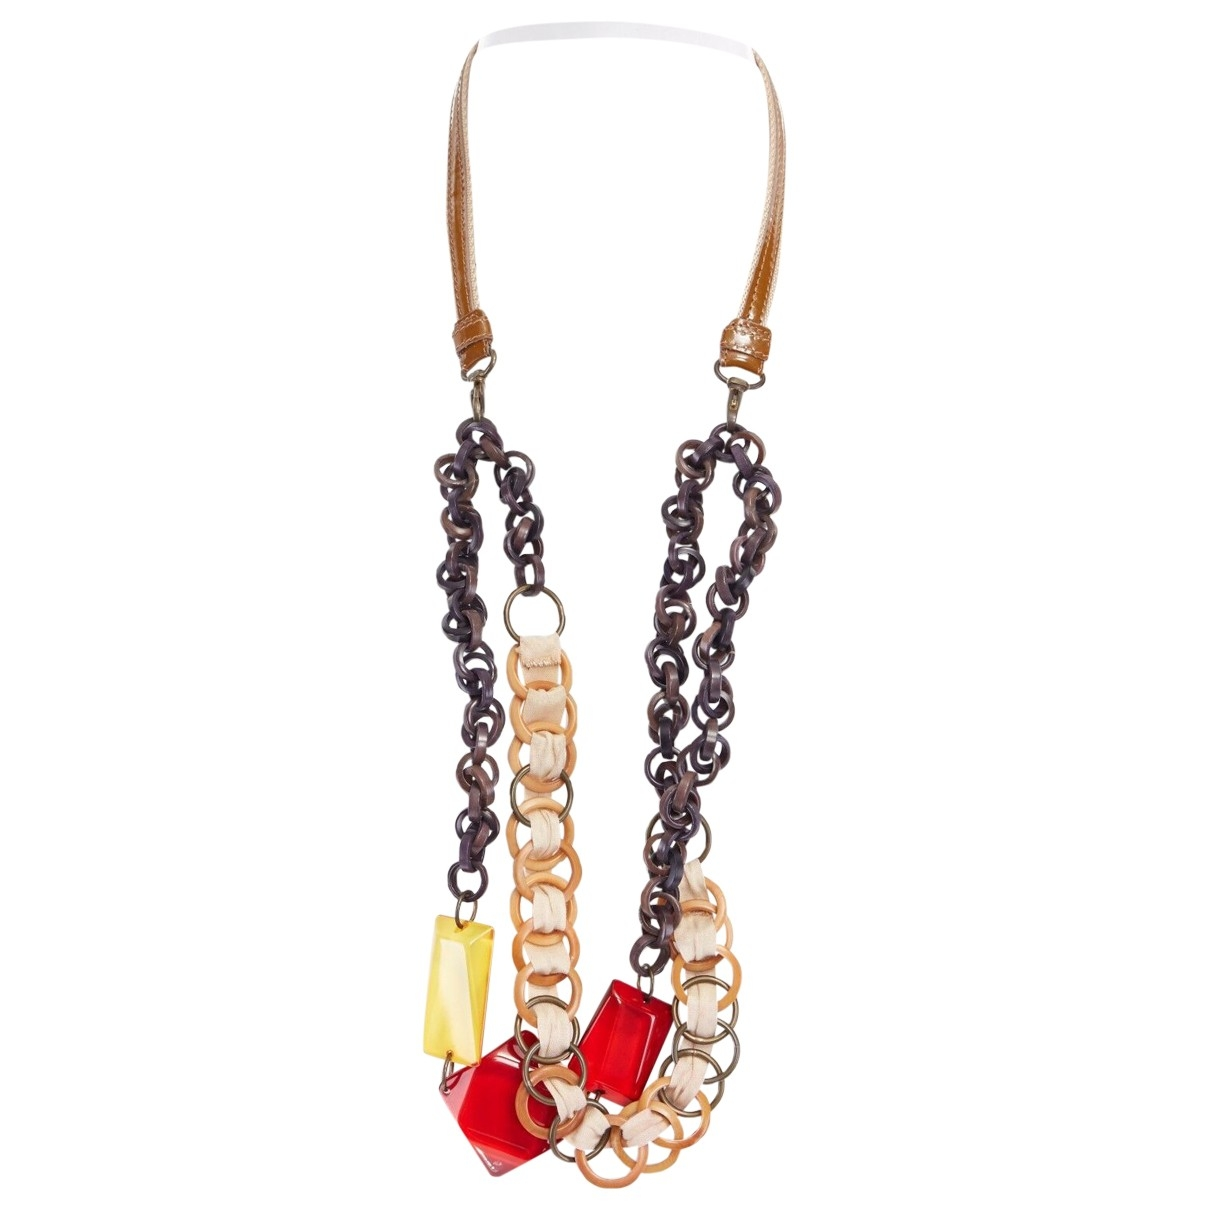 Marni \N Red Metal necklace for Women \N